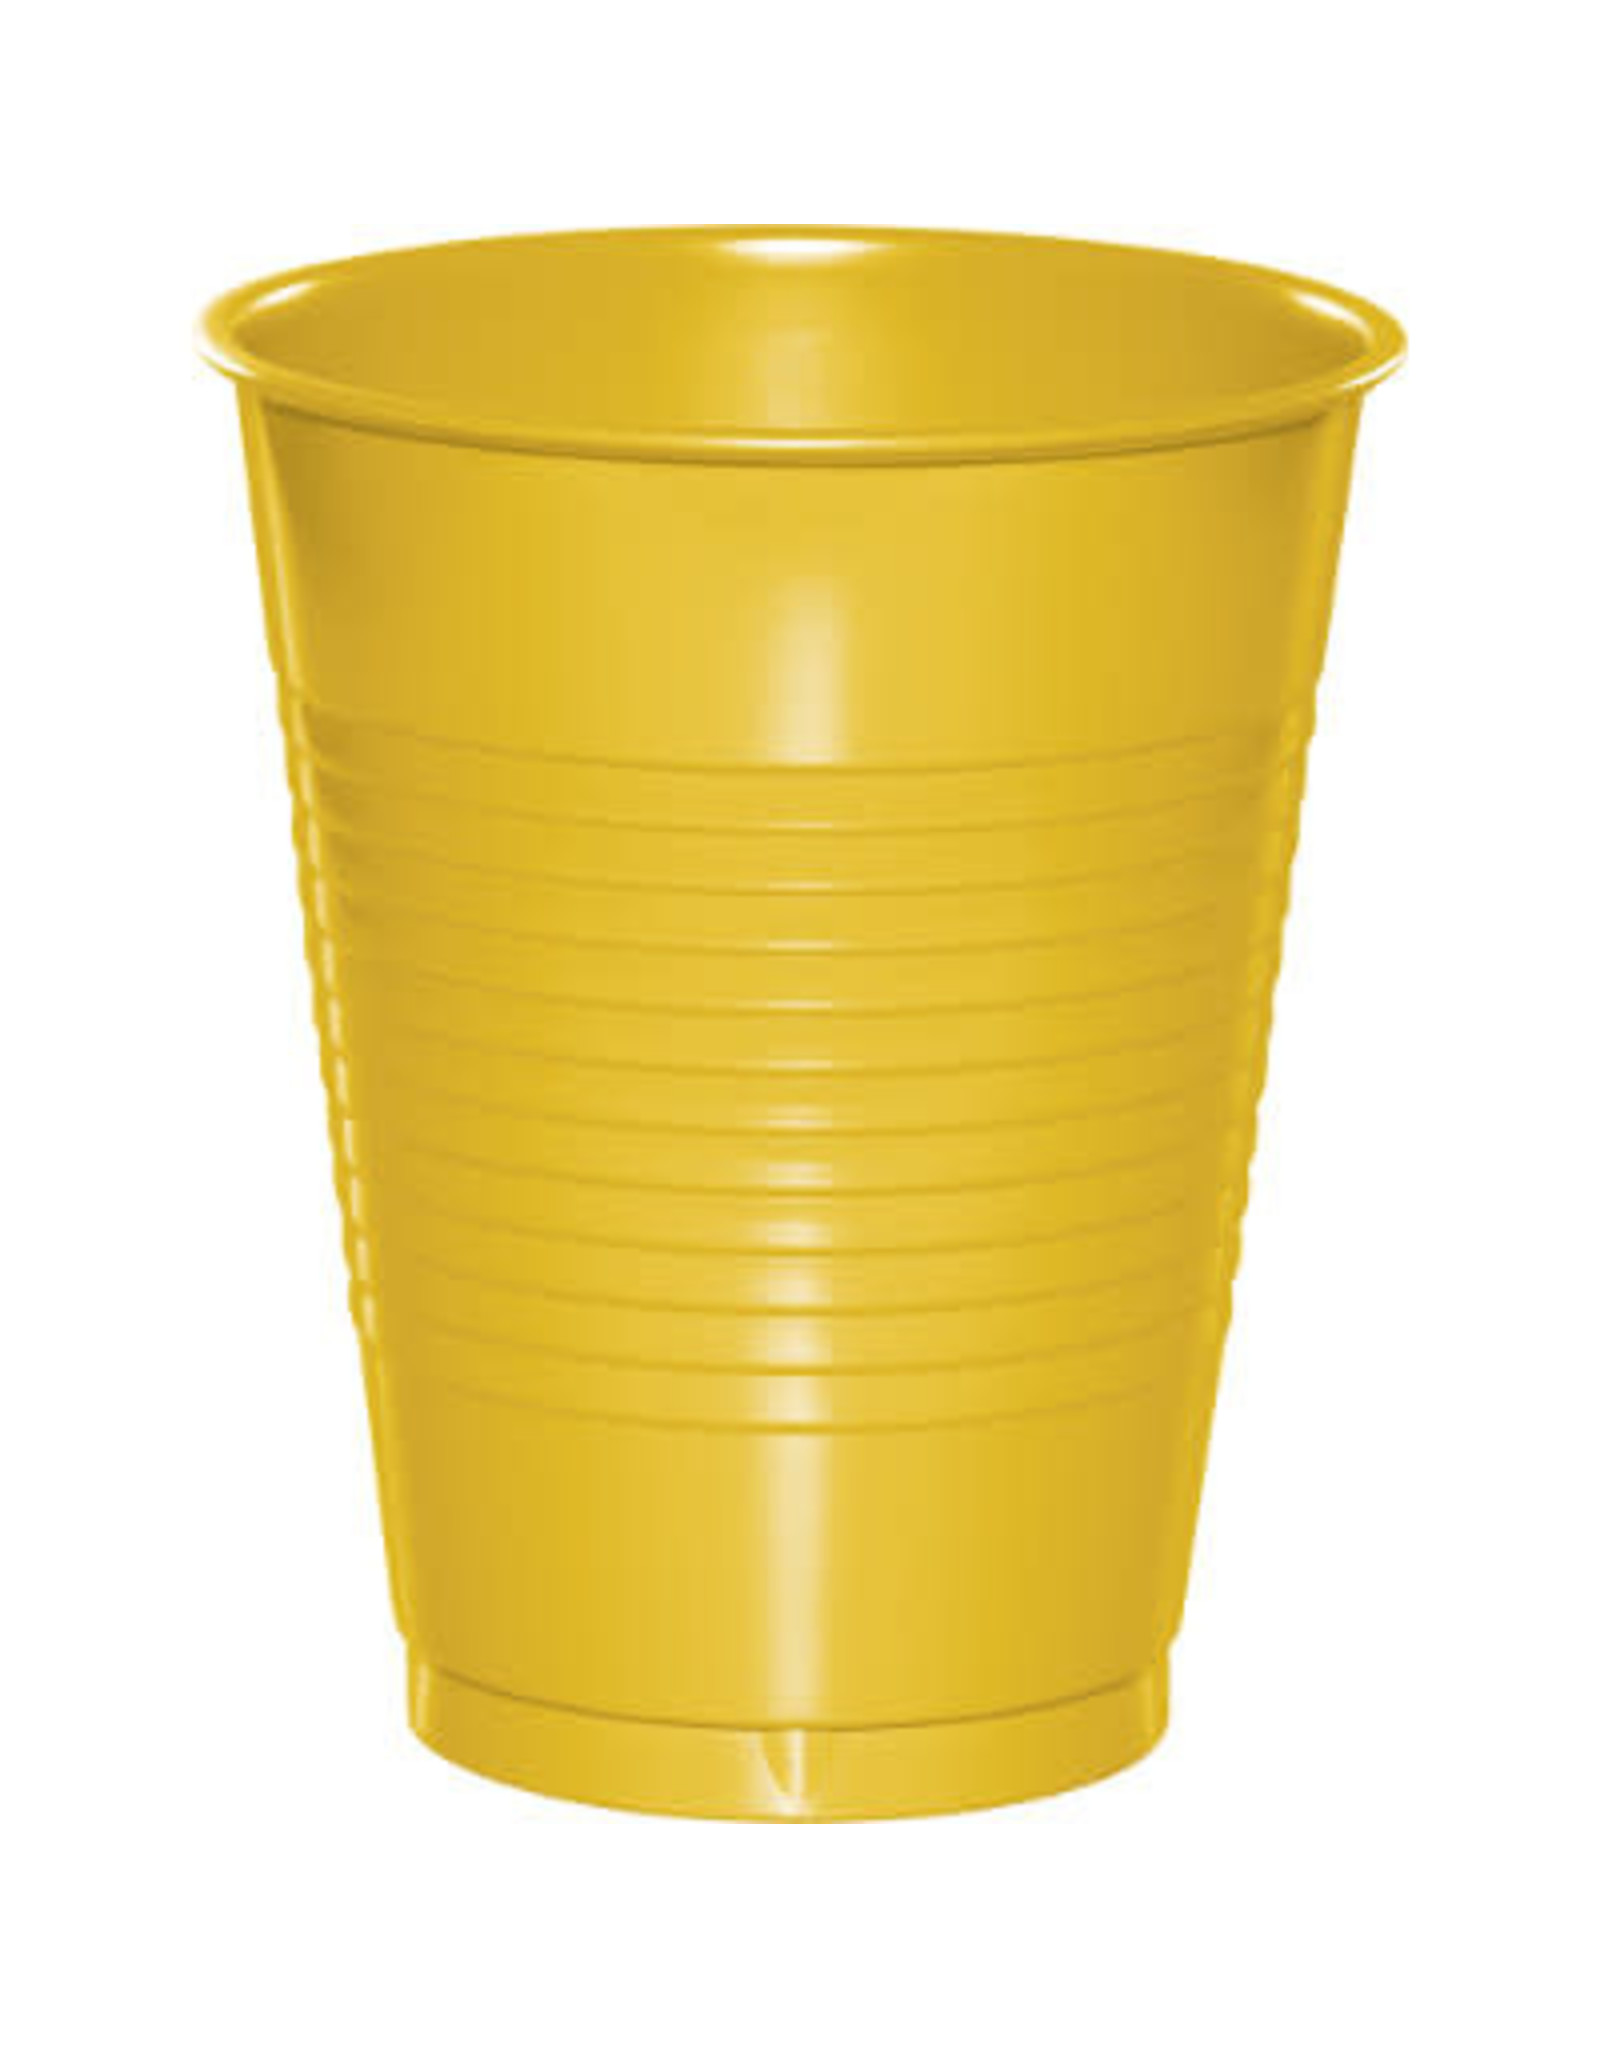 Touch of Color 16oz SCHOOL BUS YELLOW PLASTIC CUPS